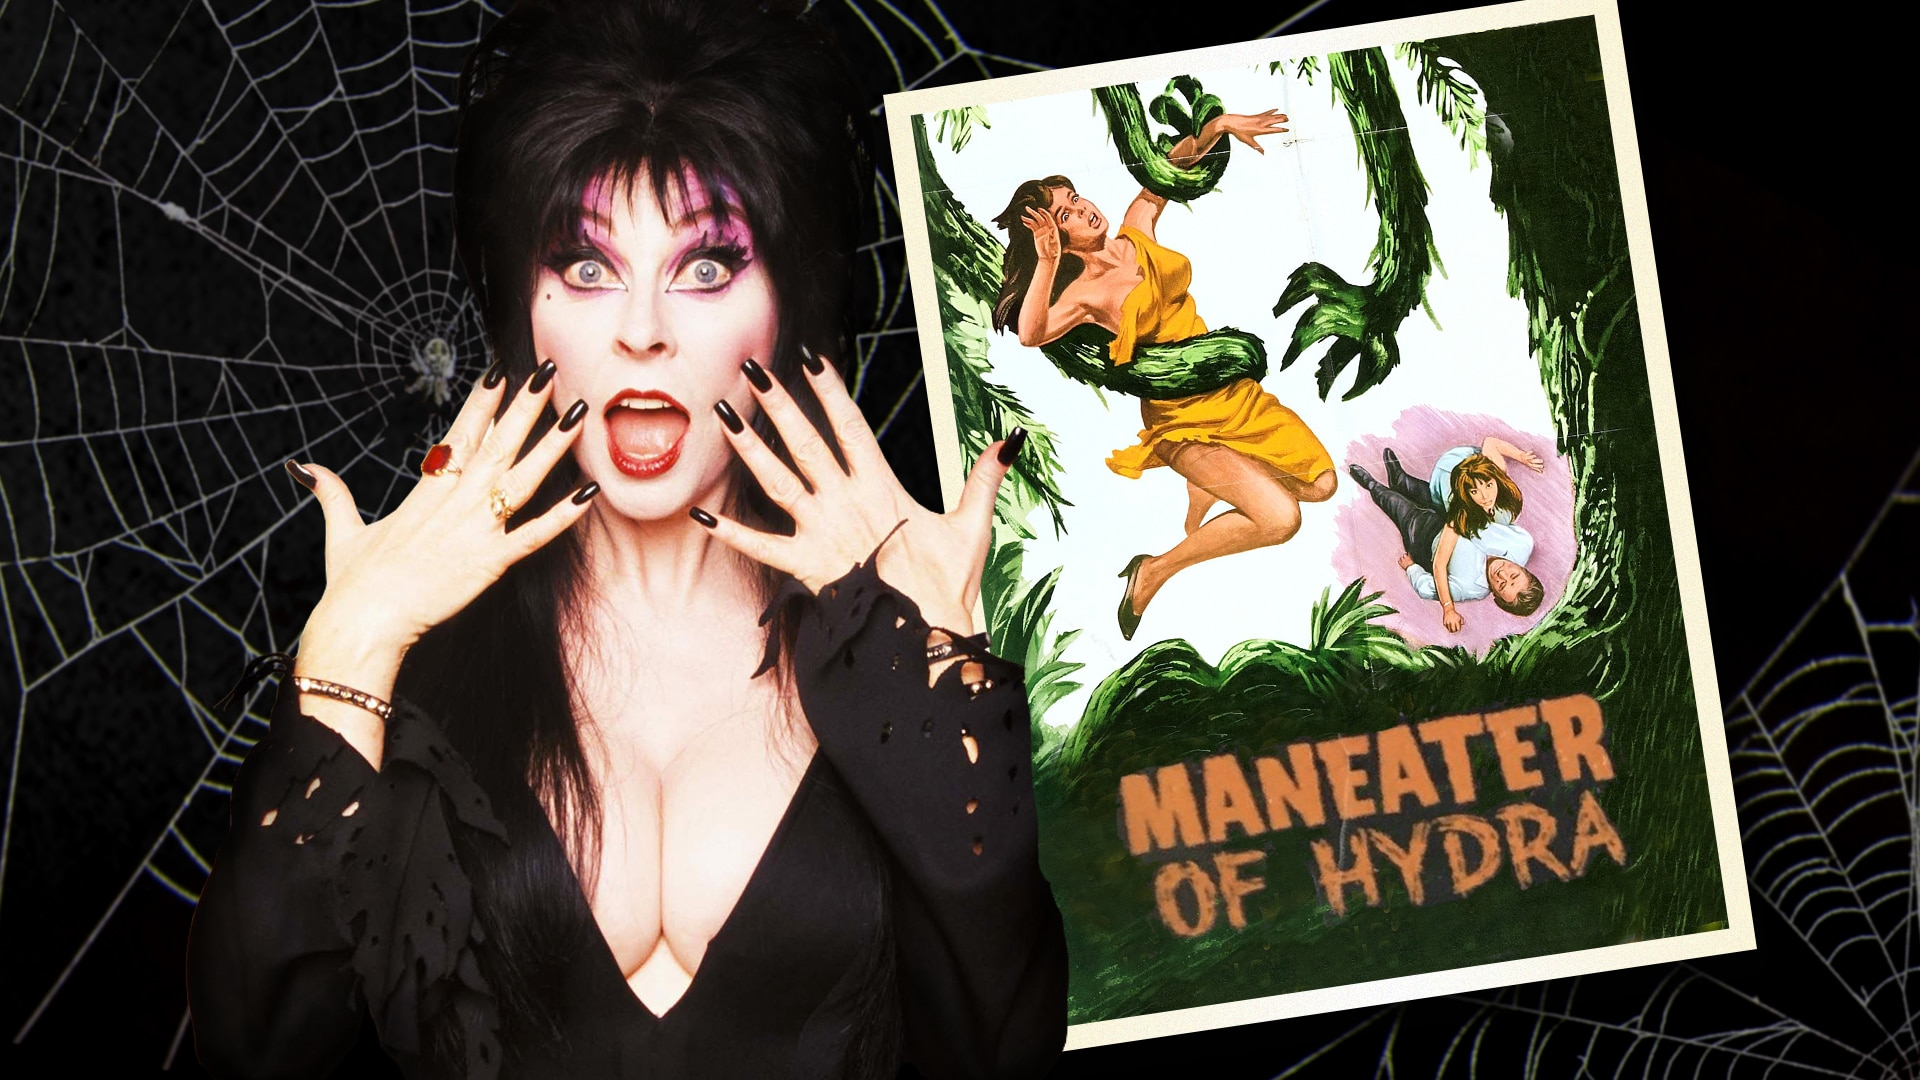 Maneater of Hydra